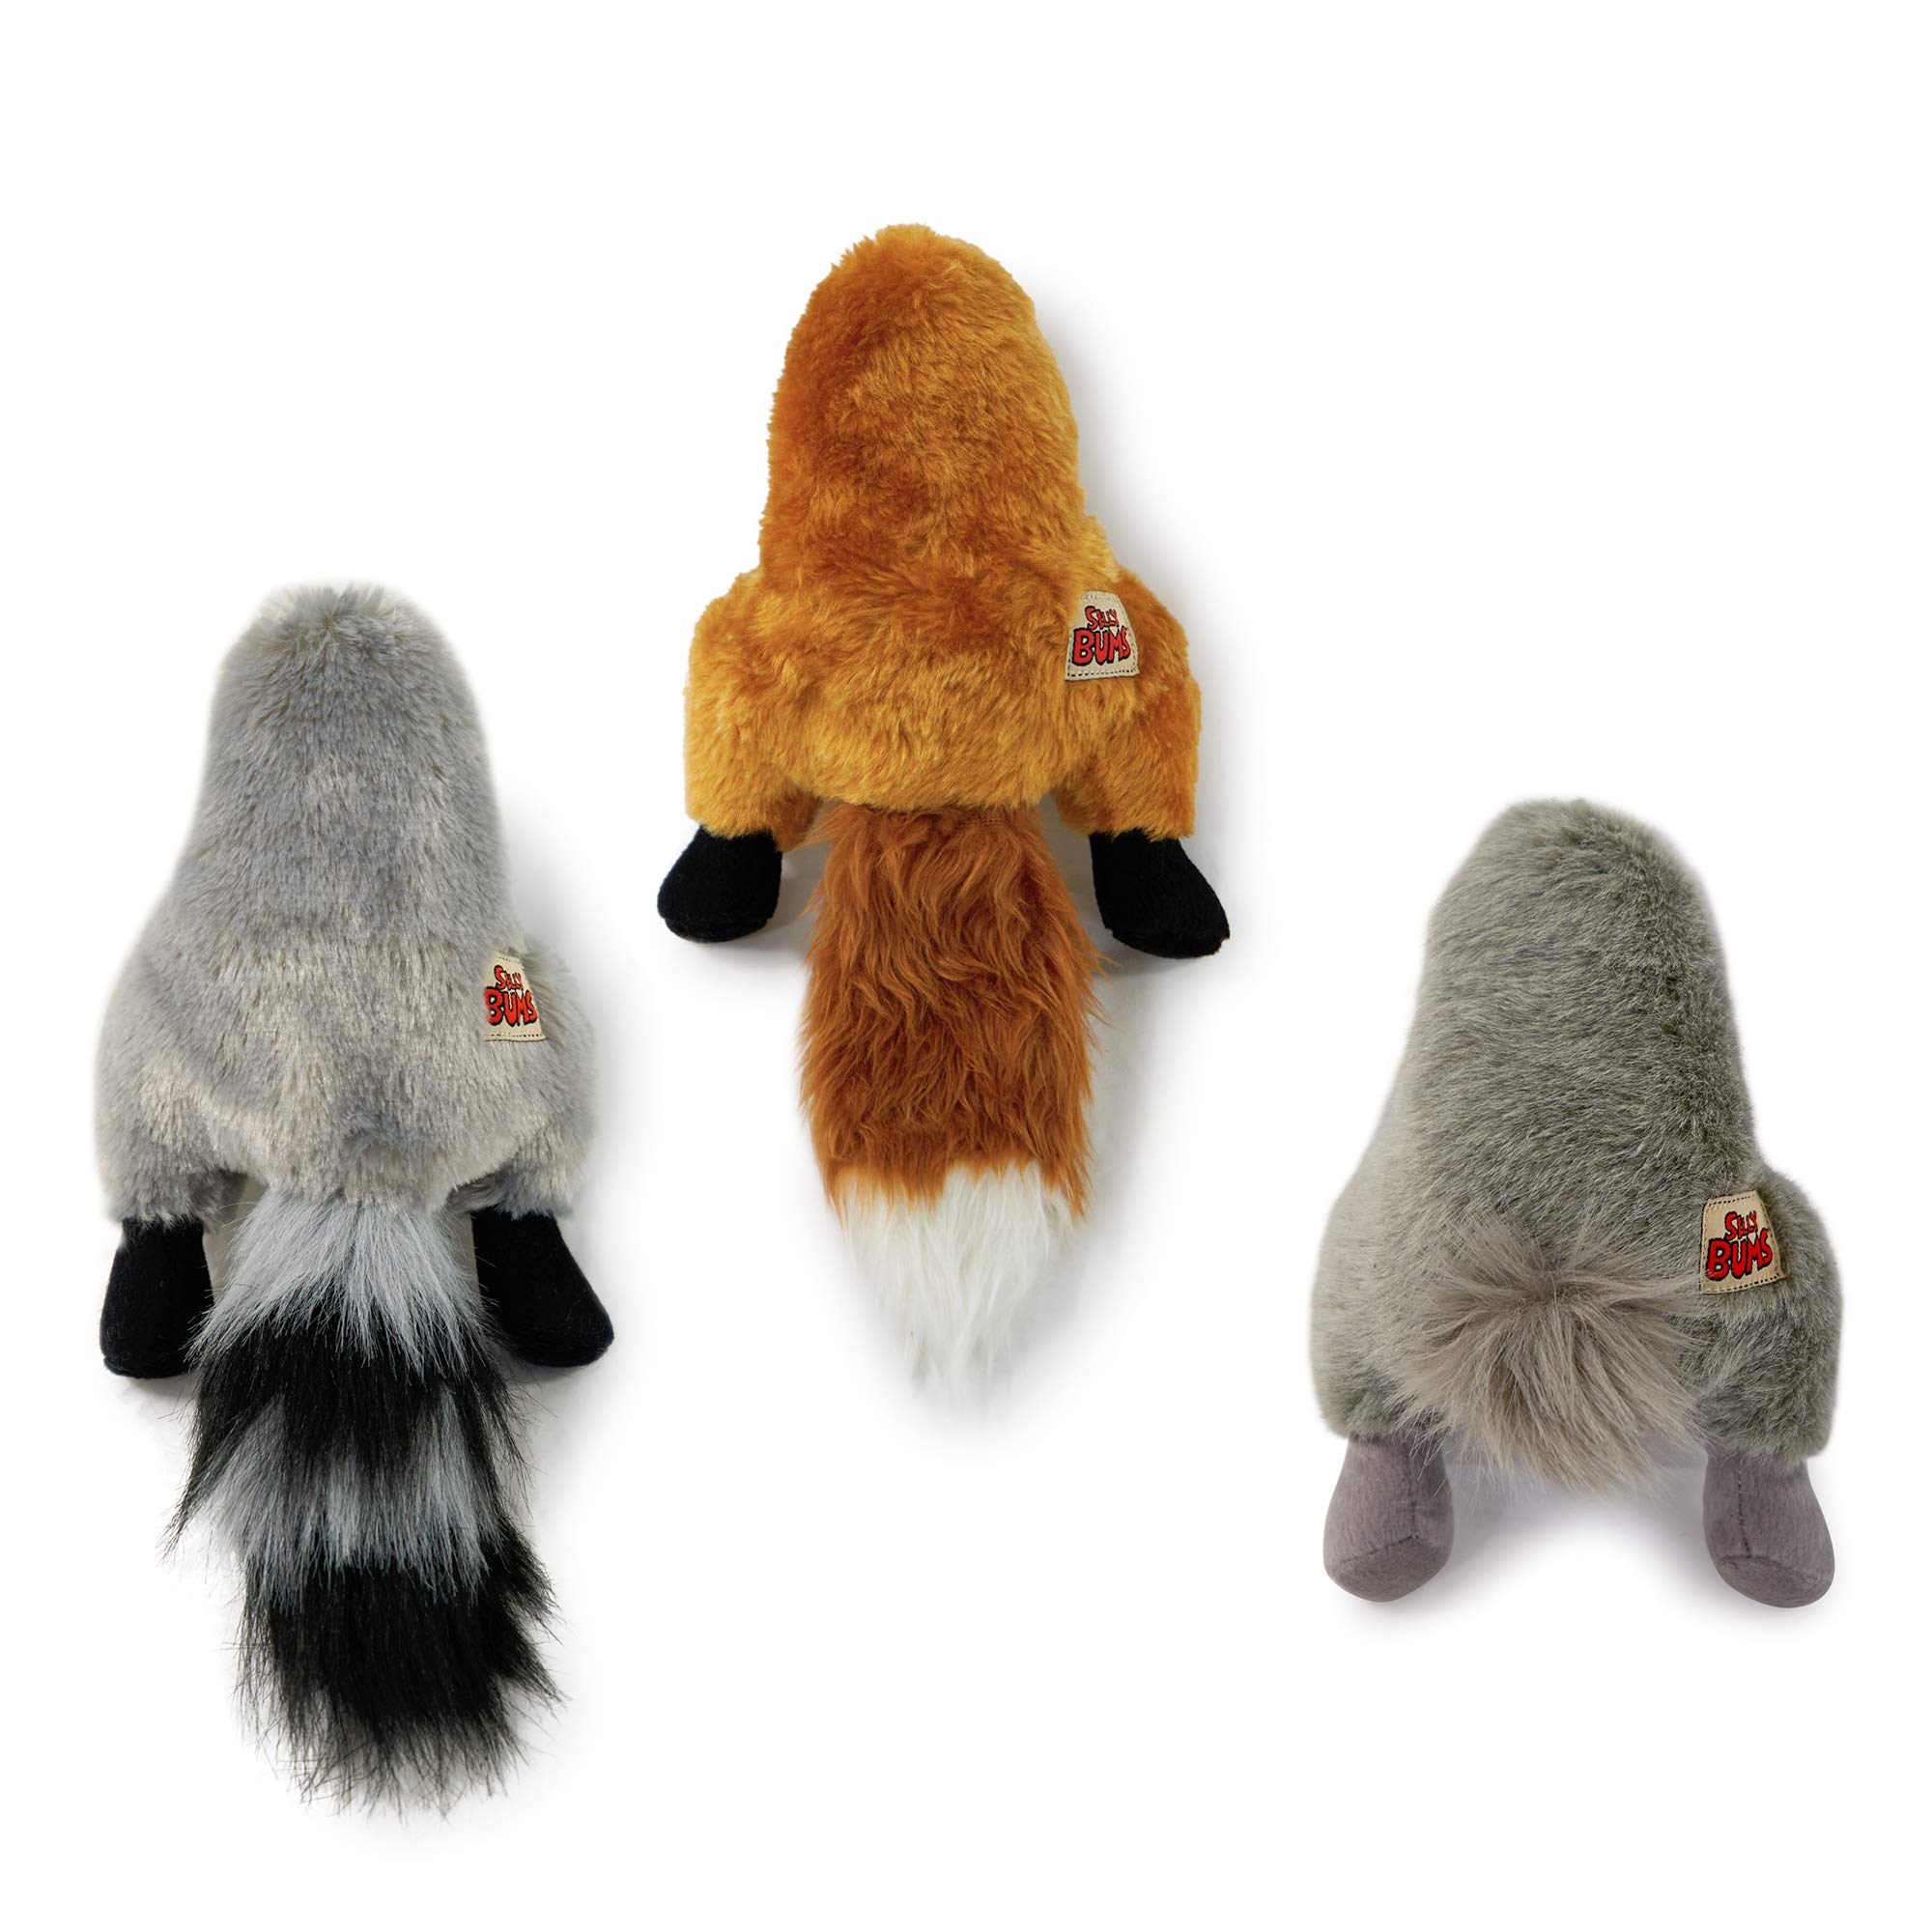 Pet Craft Supply Co. Funny Bums Animals Assortment Soft Plush Stuffed Crinkle Squeaking Cozy Cuddling Dog Toys